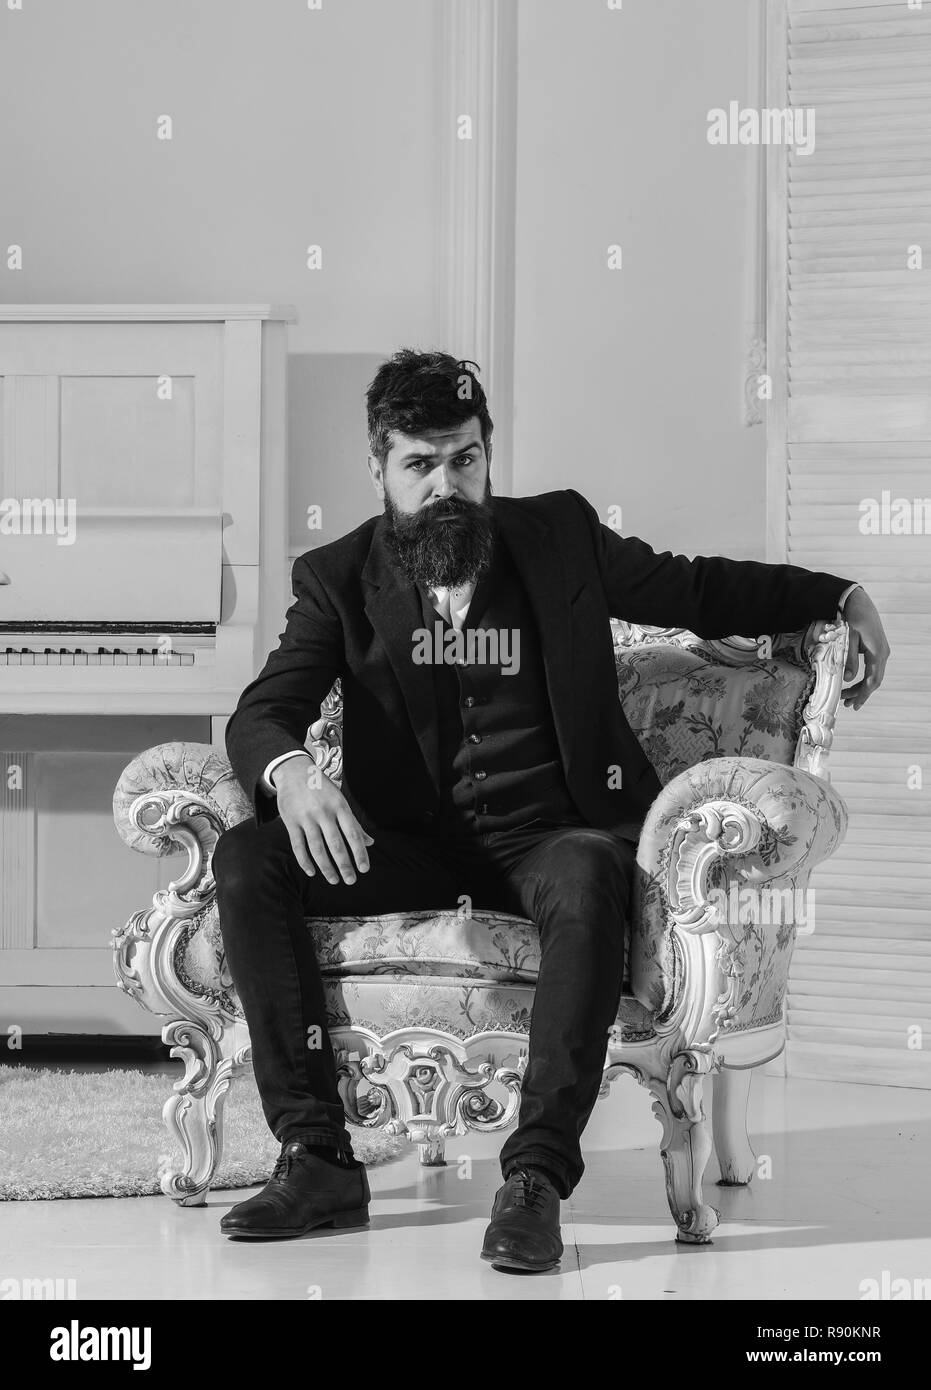 Wealth and richness concept. Man with beard and mustache wearing classic suit, stylish fashionable outfit. Macho attractive and elegant on serious, thoughtful face sitting on old fashioned armchair. - Stock Image